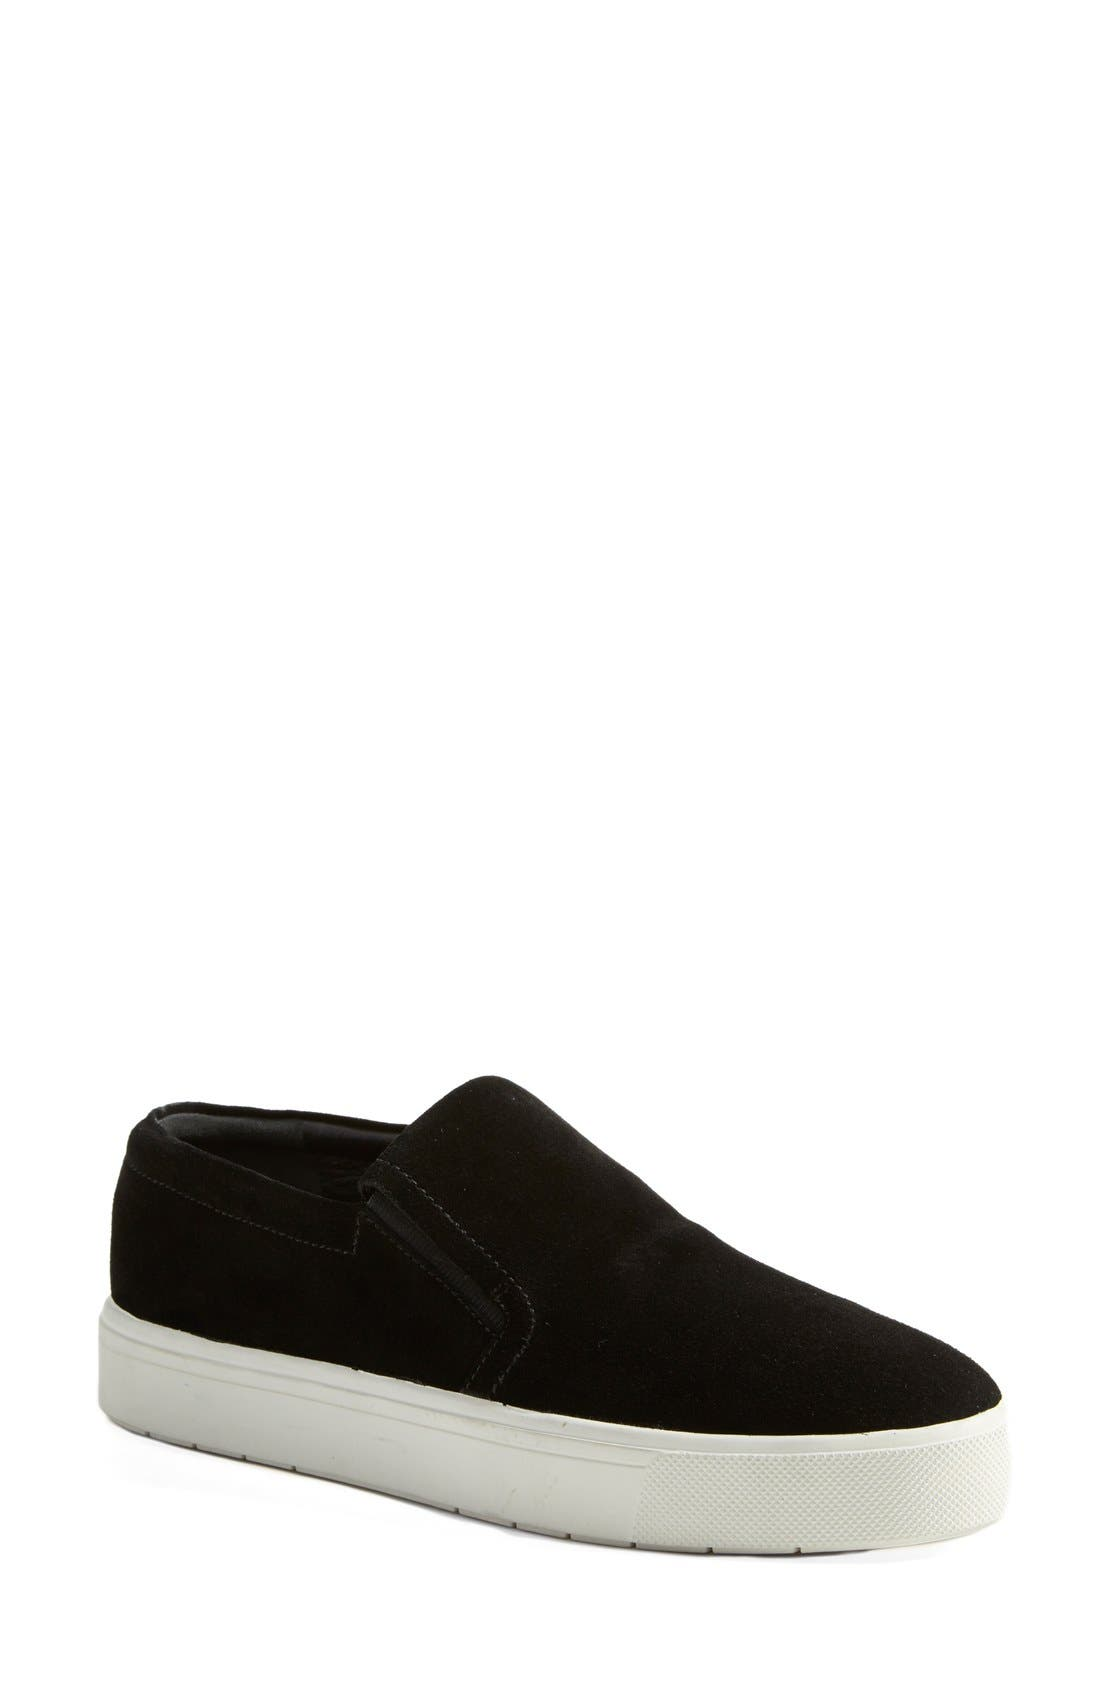 Alternate Image 1 Selected - Vince 'Bowen' Slip-On (Women)